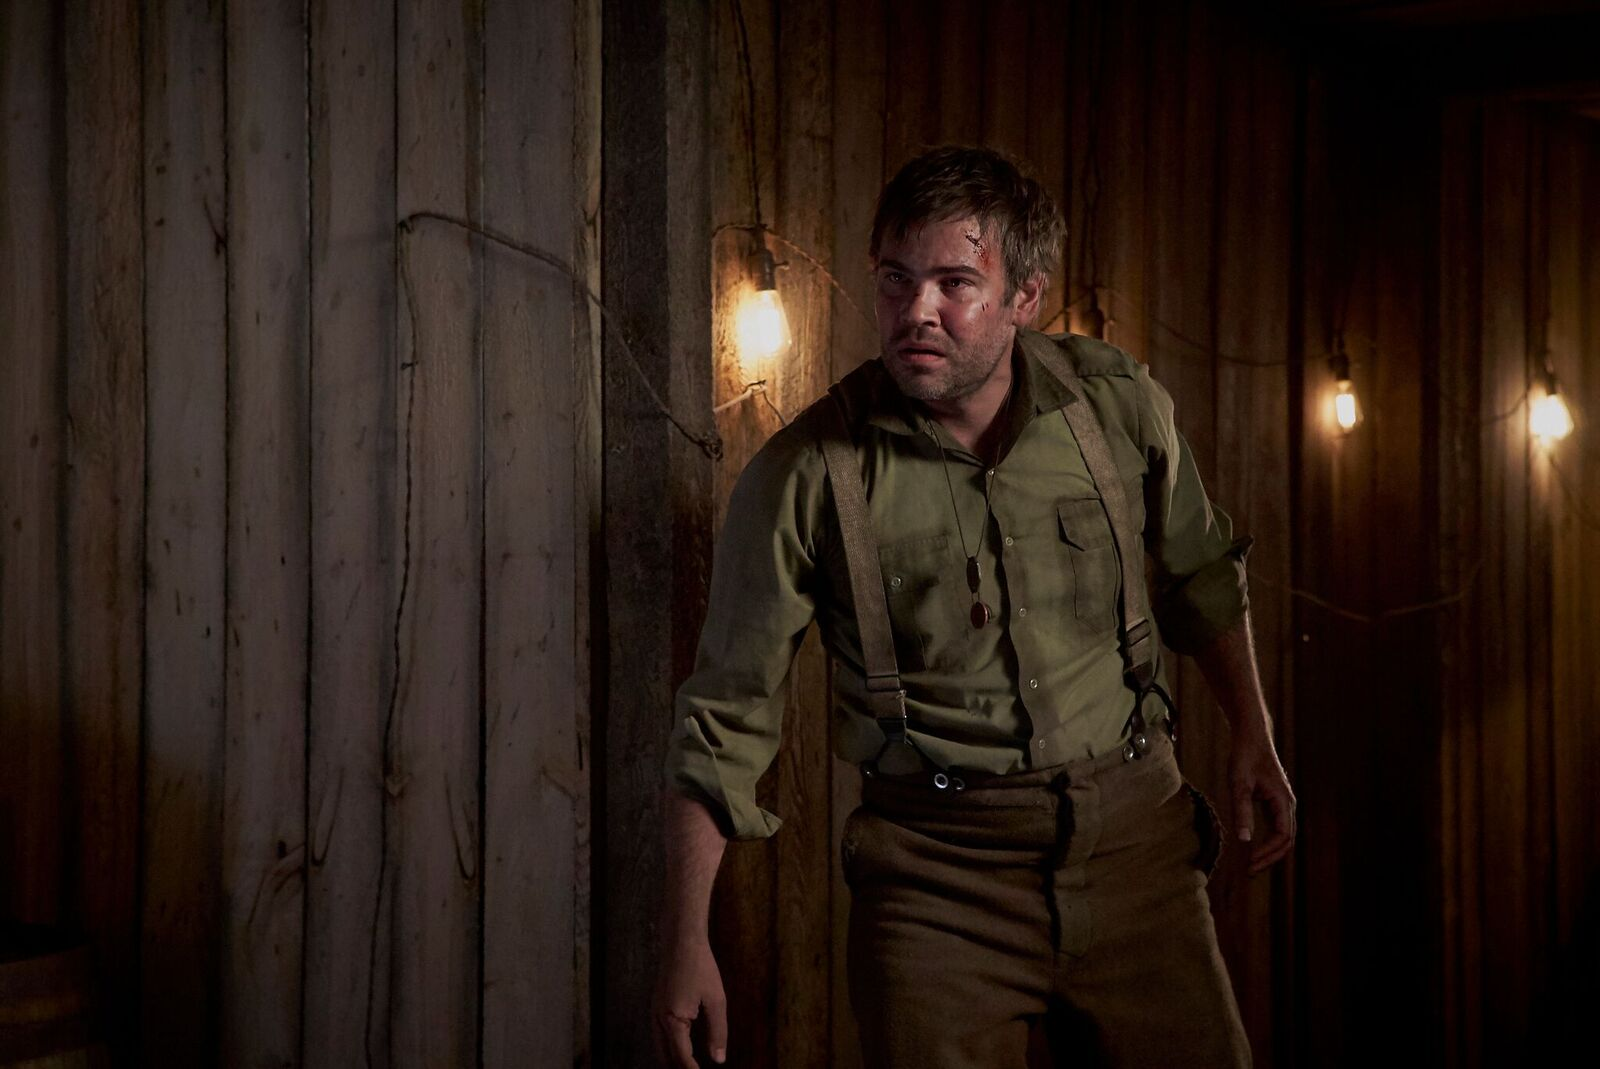 Trench 11 Rossif Sutherland